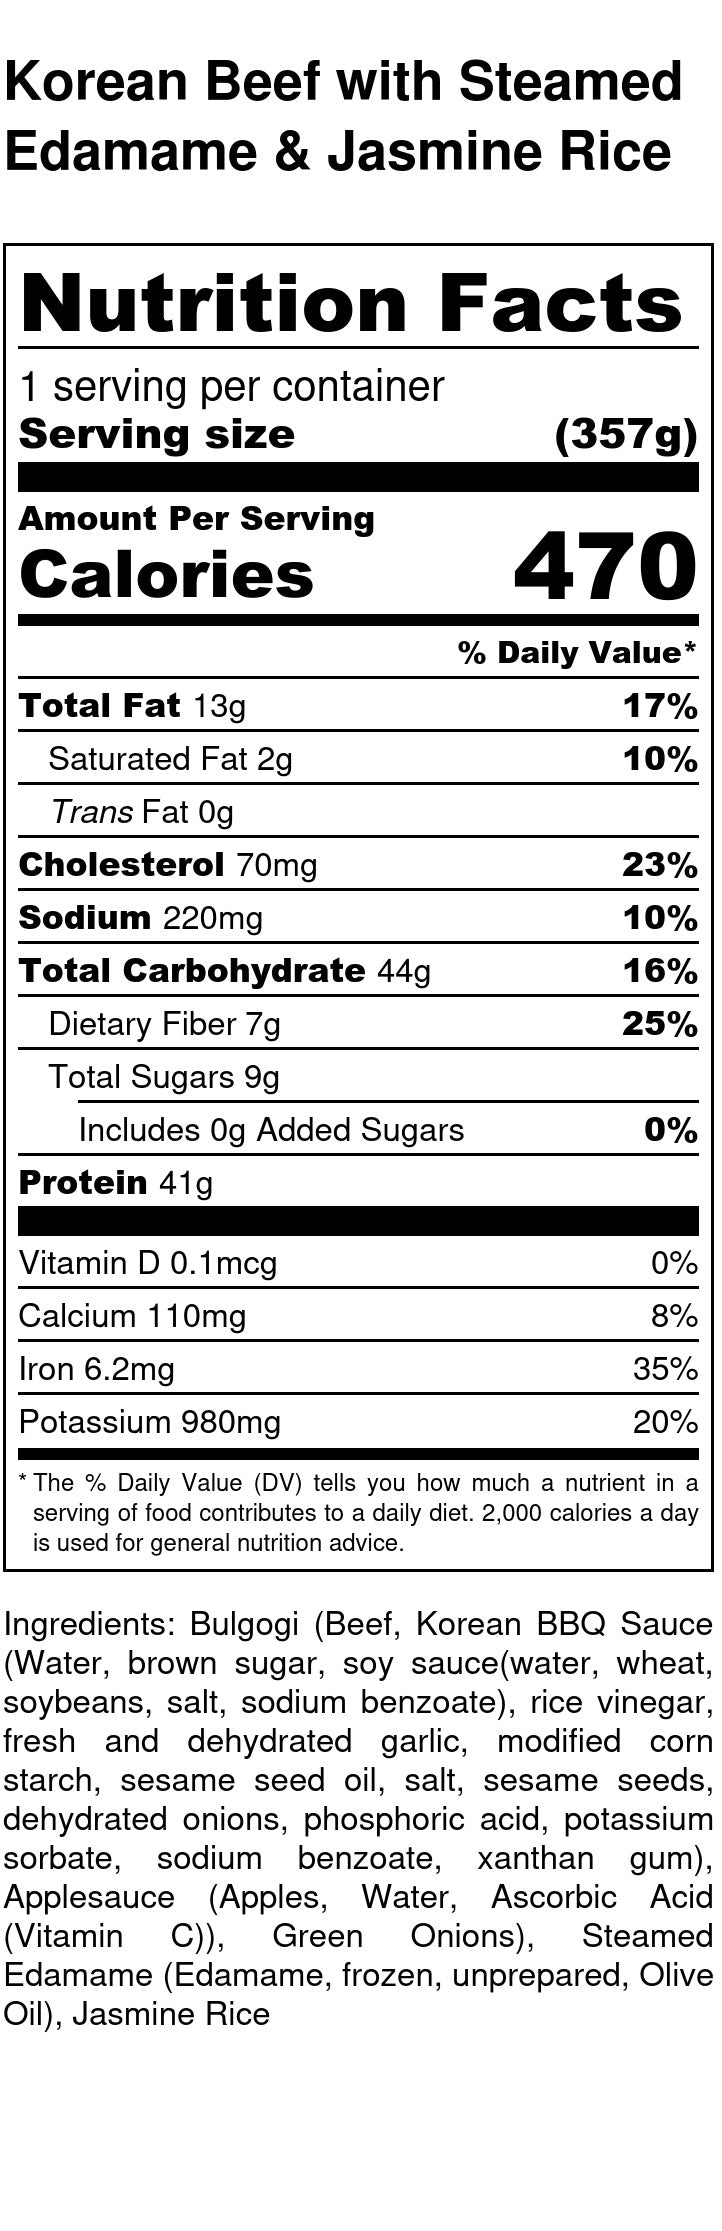 Korean Beef Nutrition Facts